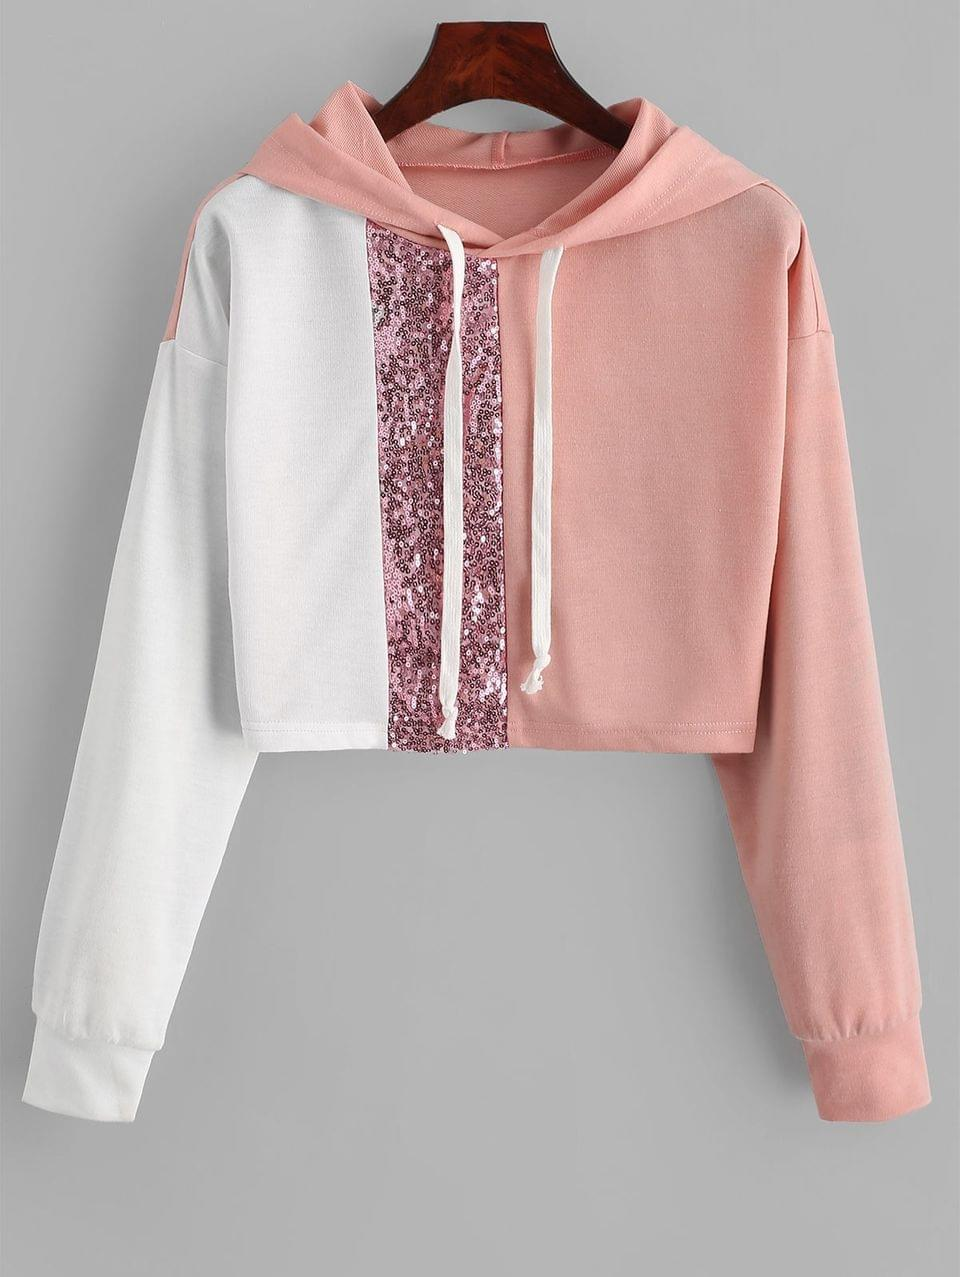 Women's Drawstring Sequined Colorblock Cropped Hoodie - Multi Xl